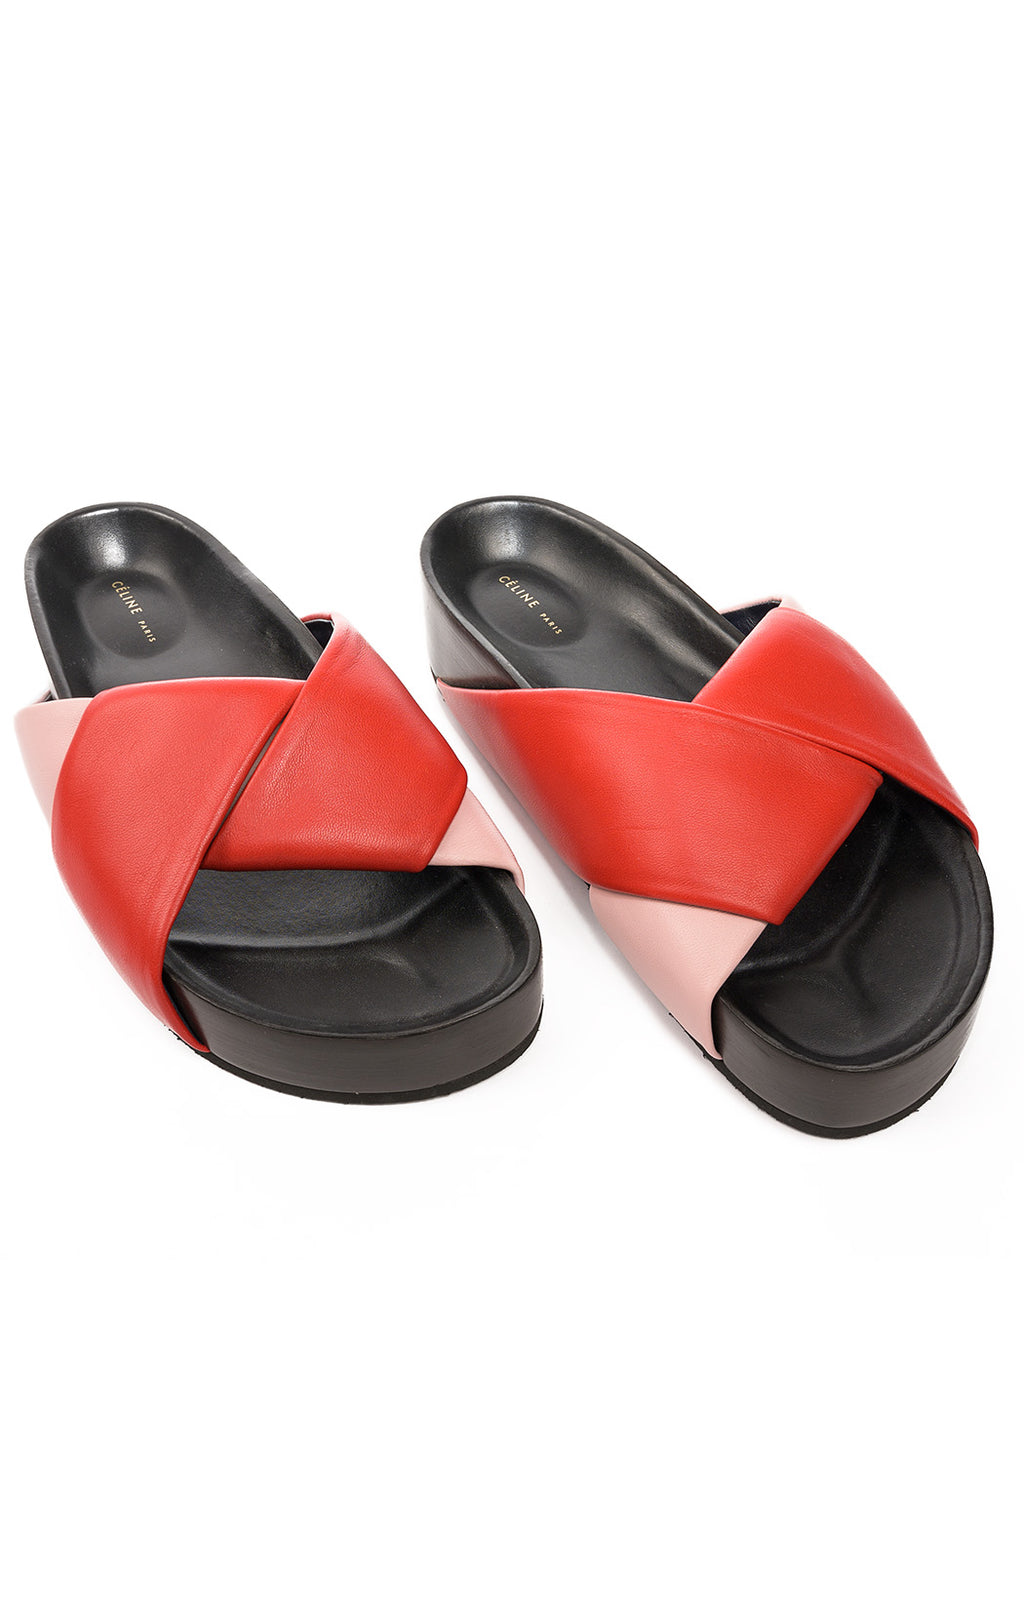 Front view of CELINE Sandals Size: 38/8